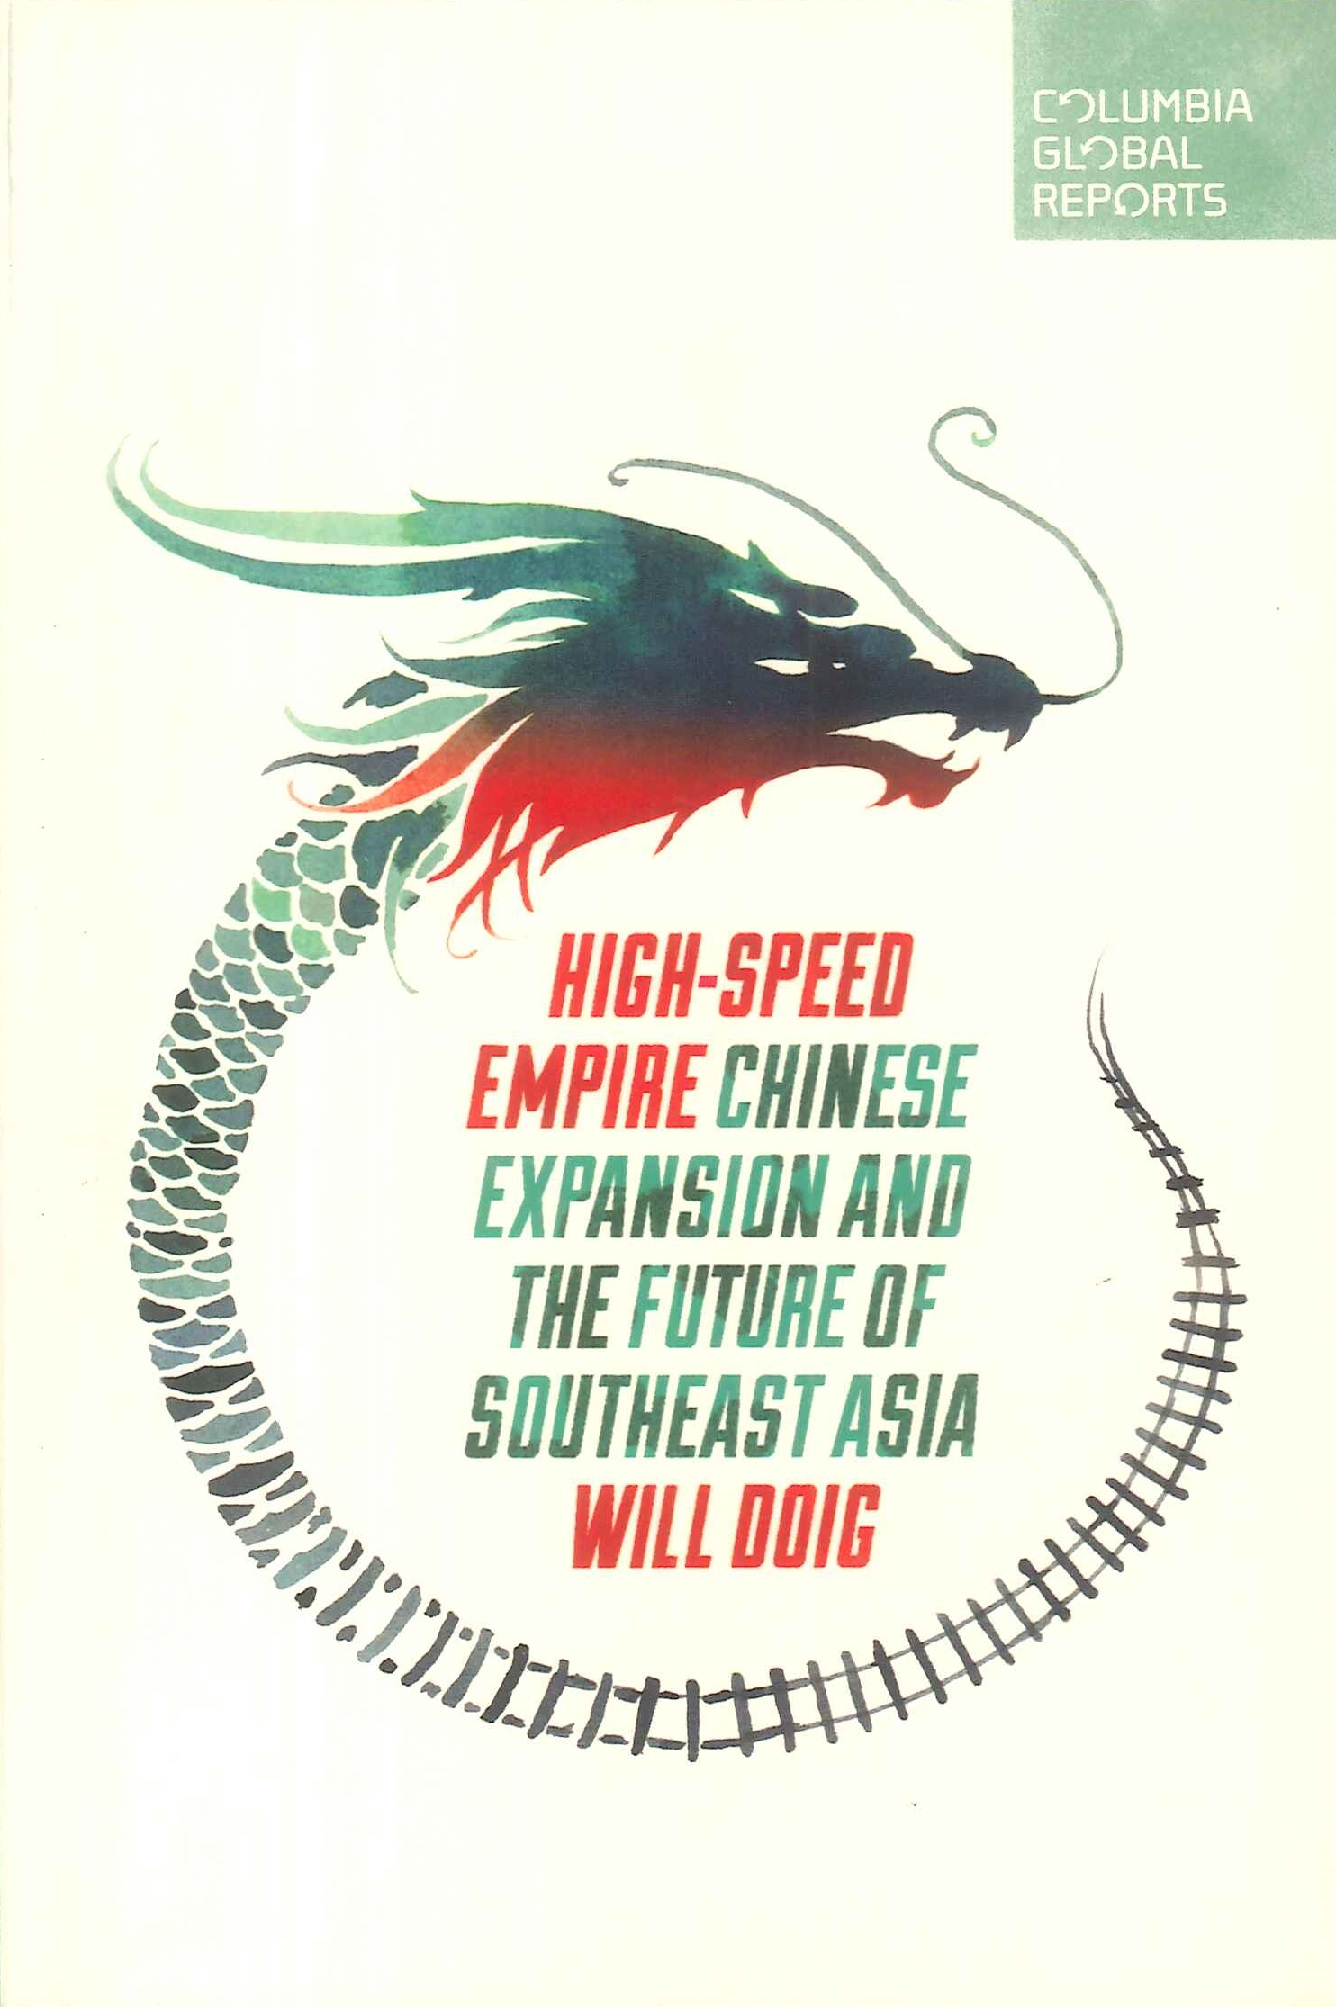 High-speed empire:Chinese expansion and the future of Southeast Asia